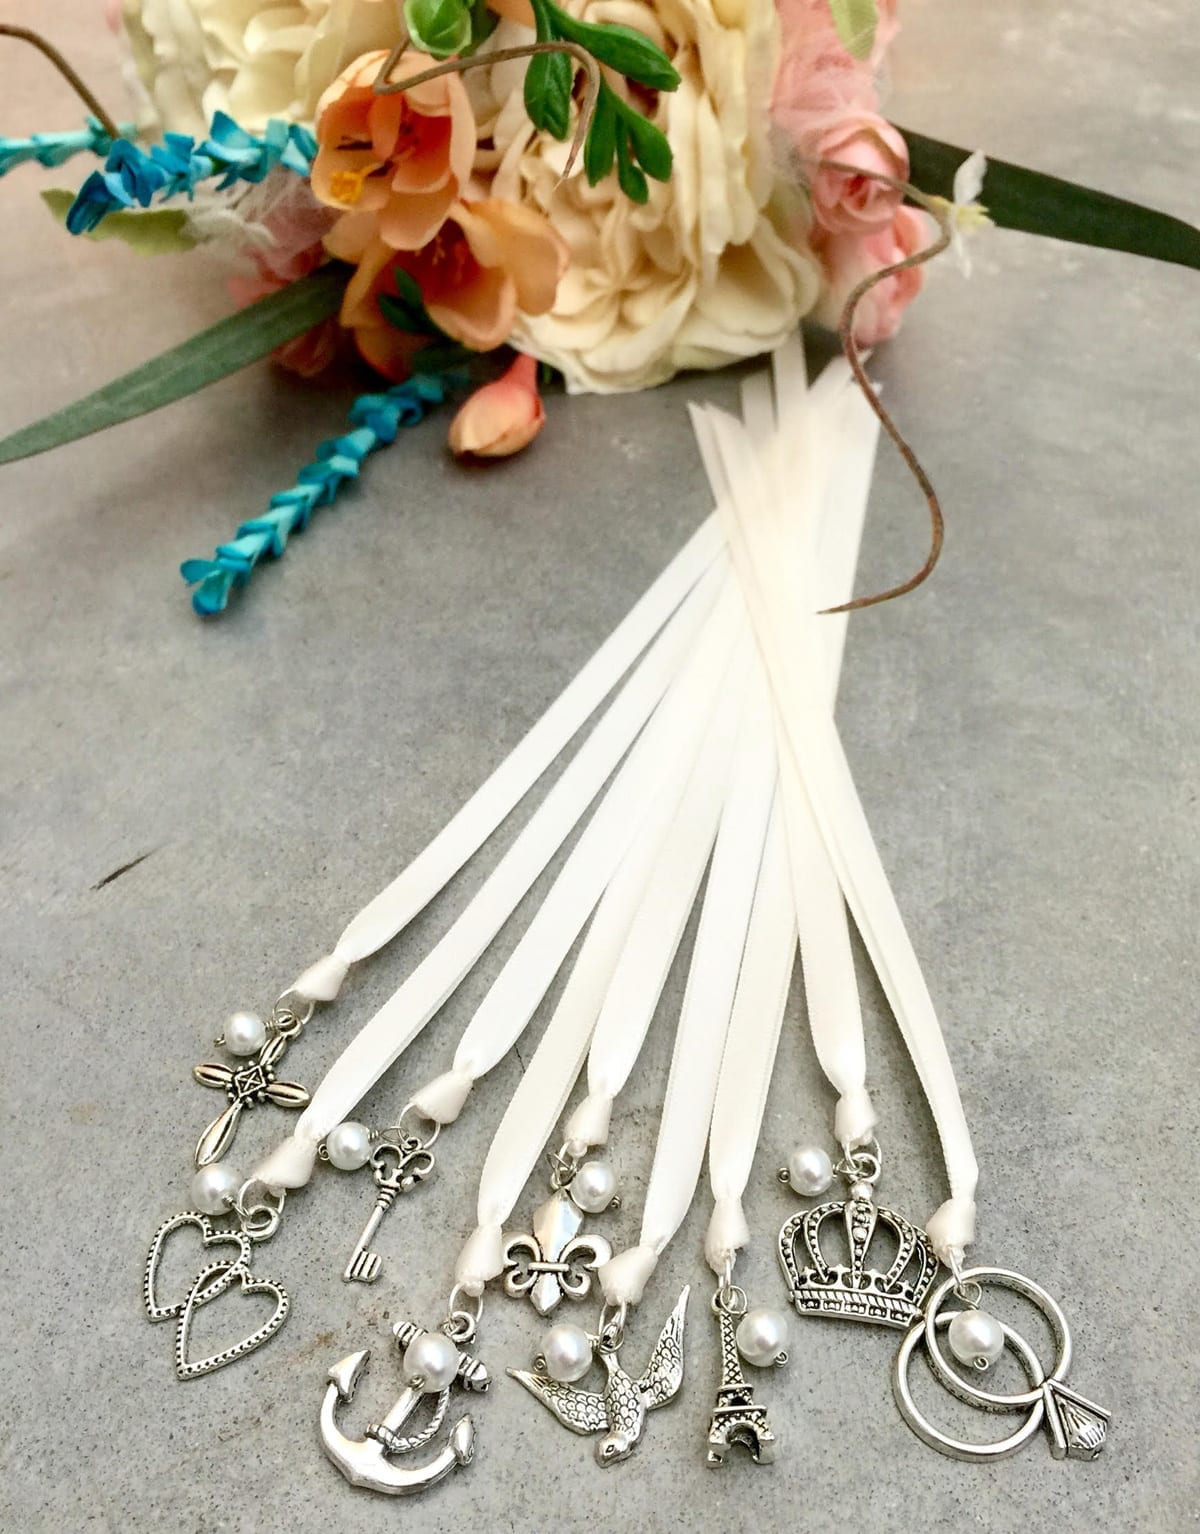 Wedding Cake charms on pretty ribbons